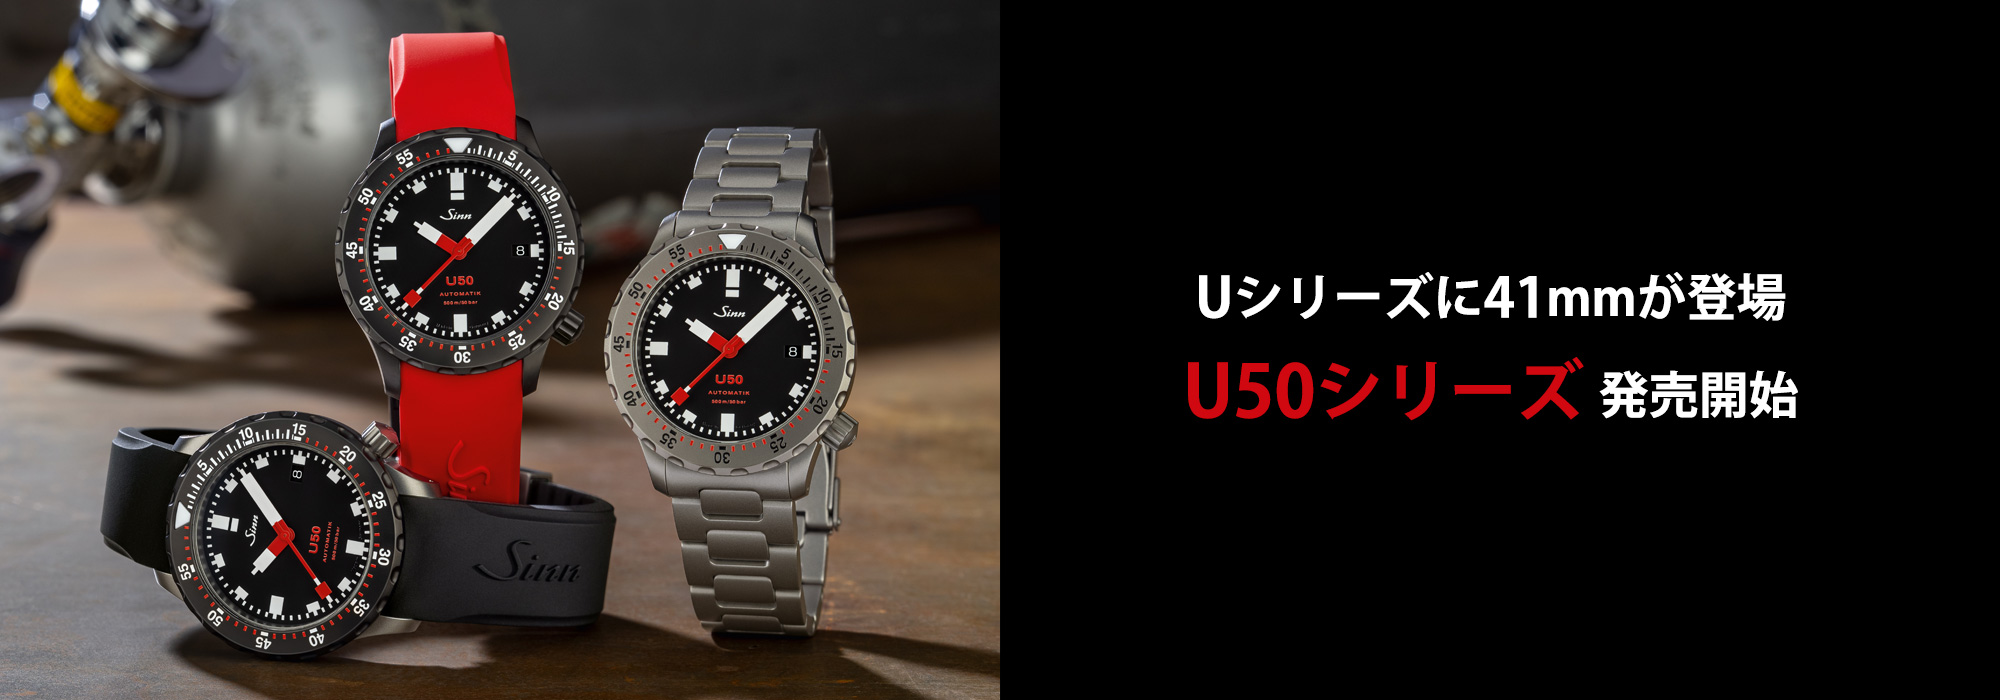 Diving Watches U50